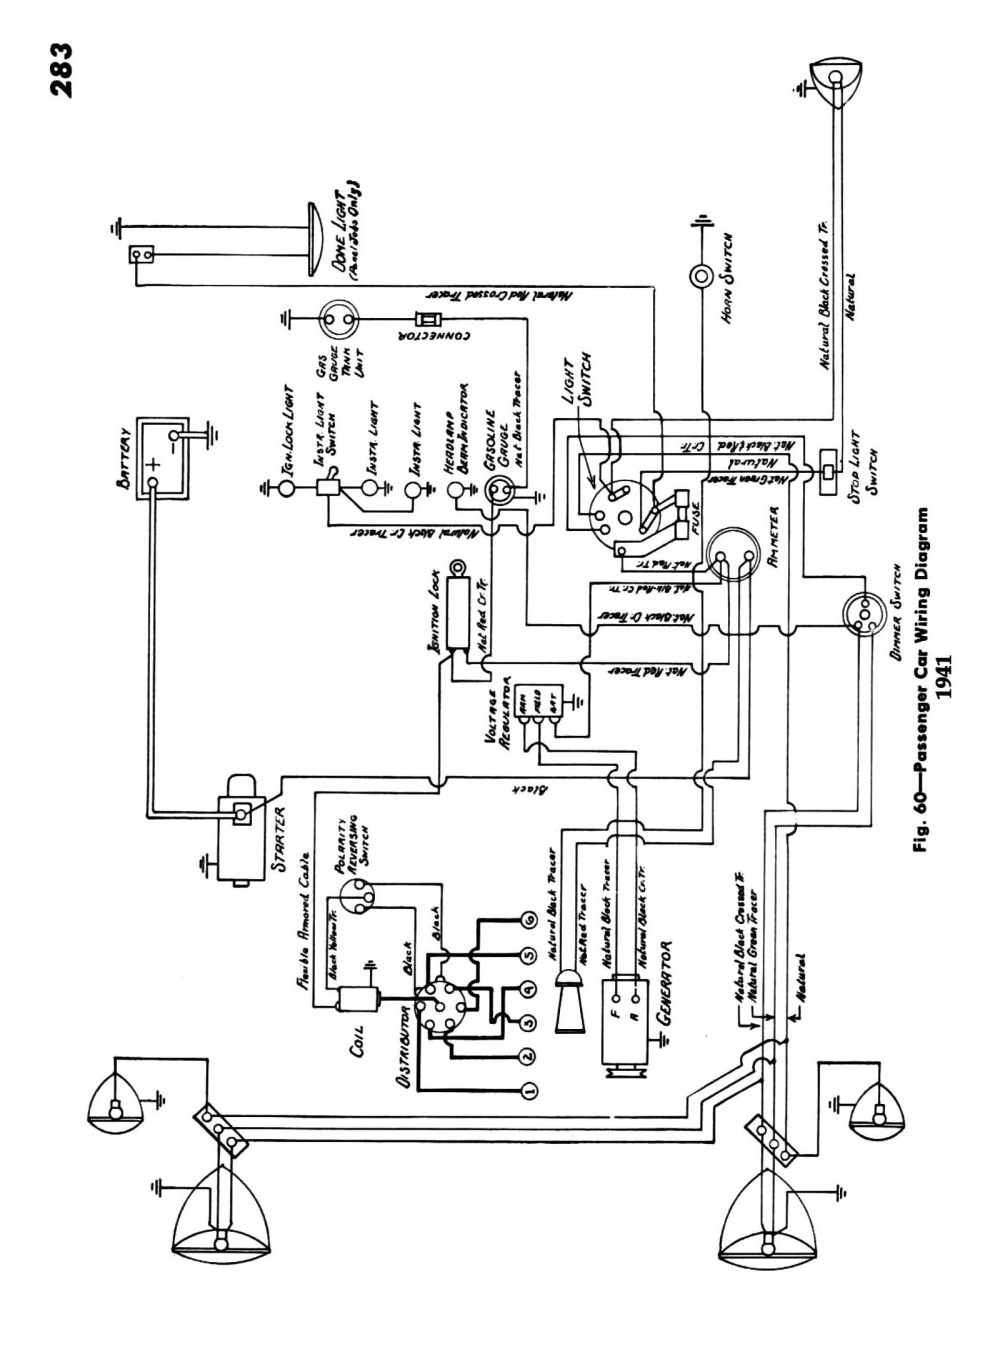 medium resolution of 1961 283 chevy engine diagram wiring diagram283 chevy engine diagram 9 chevy wiring diagrams1941 1941